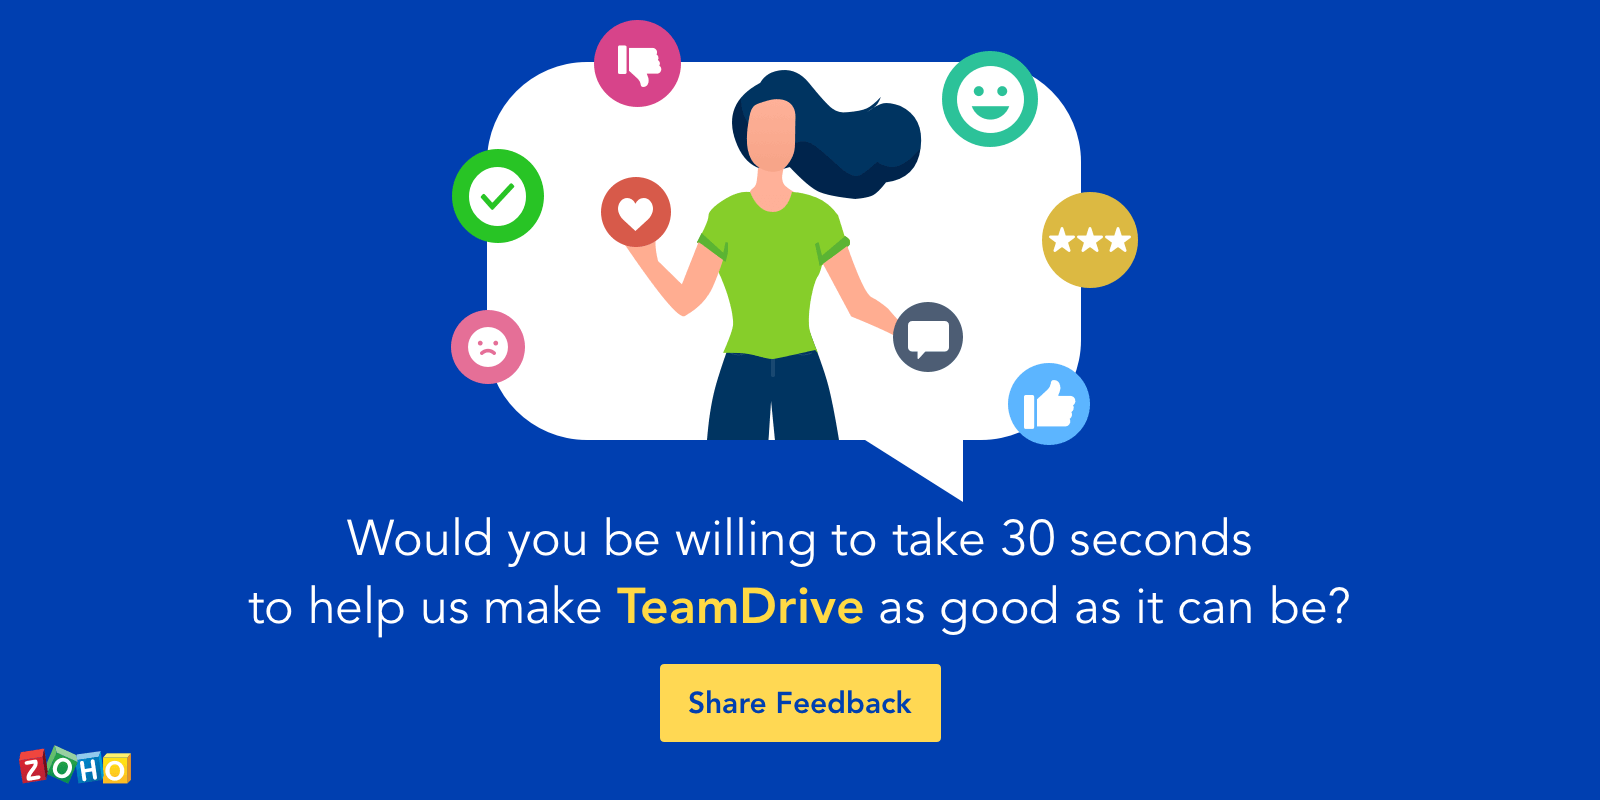 Teamdrive Feedback